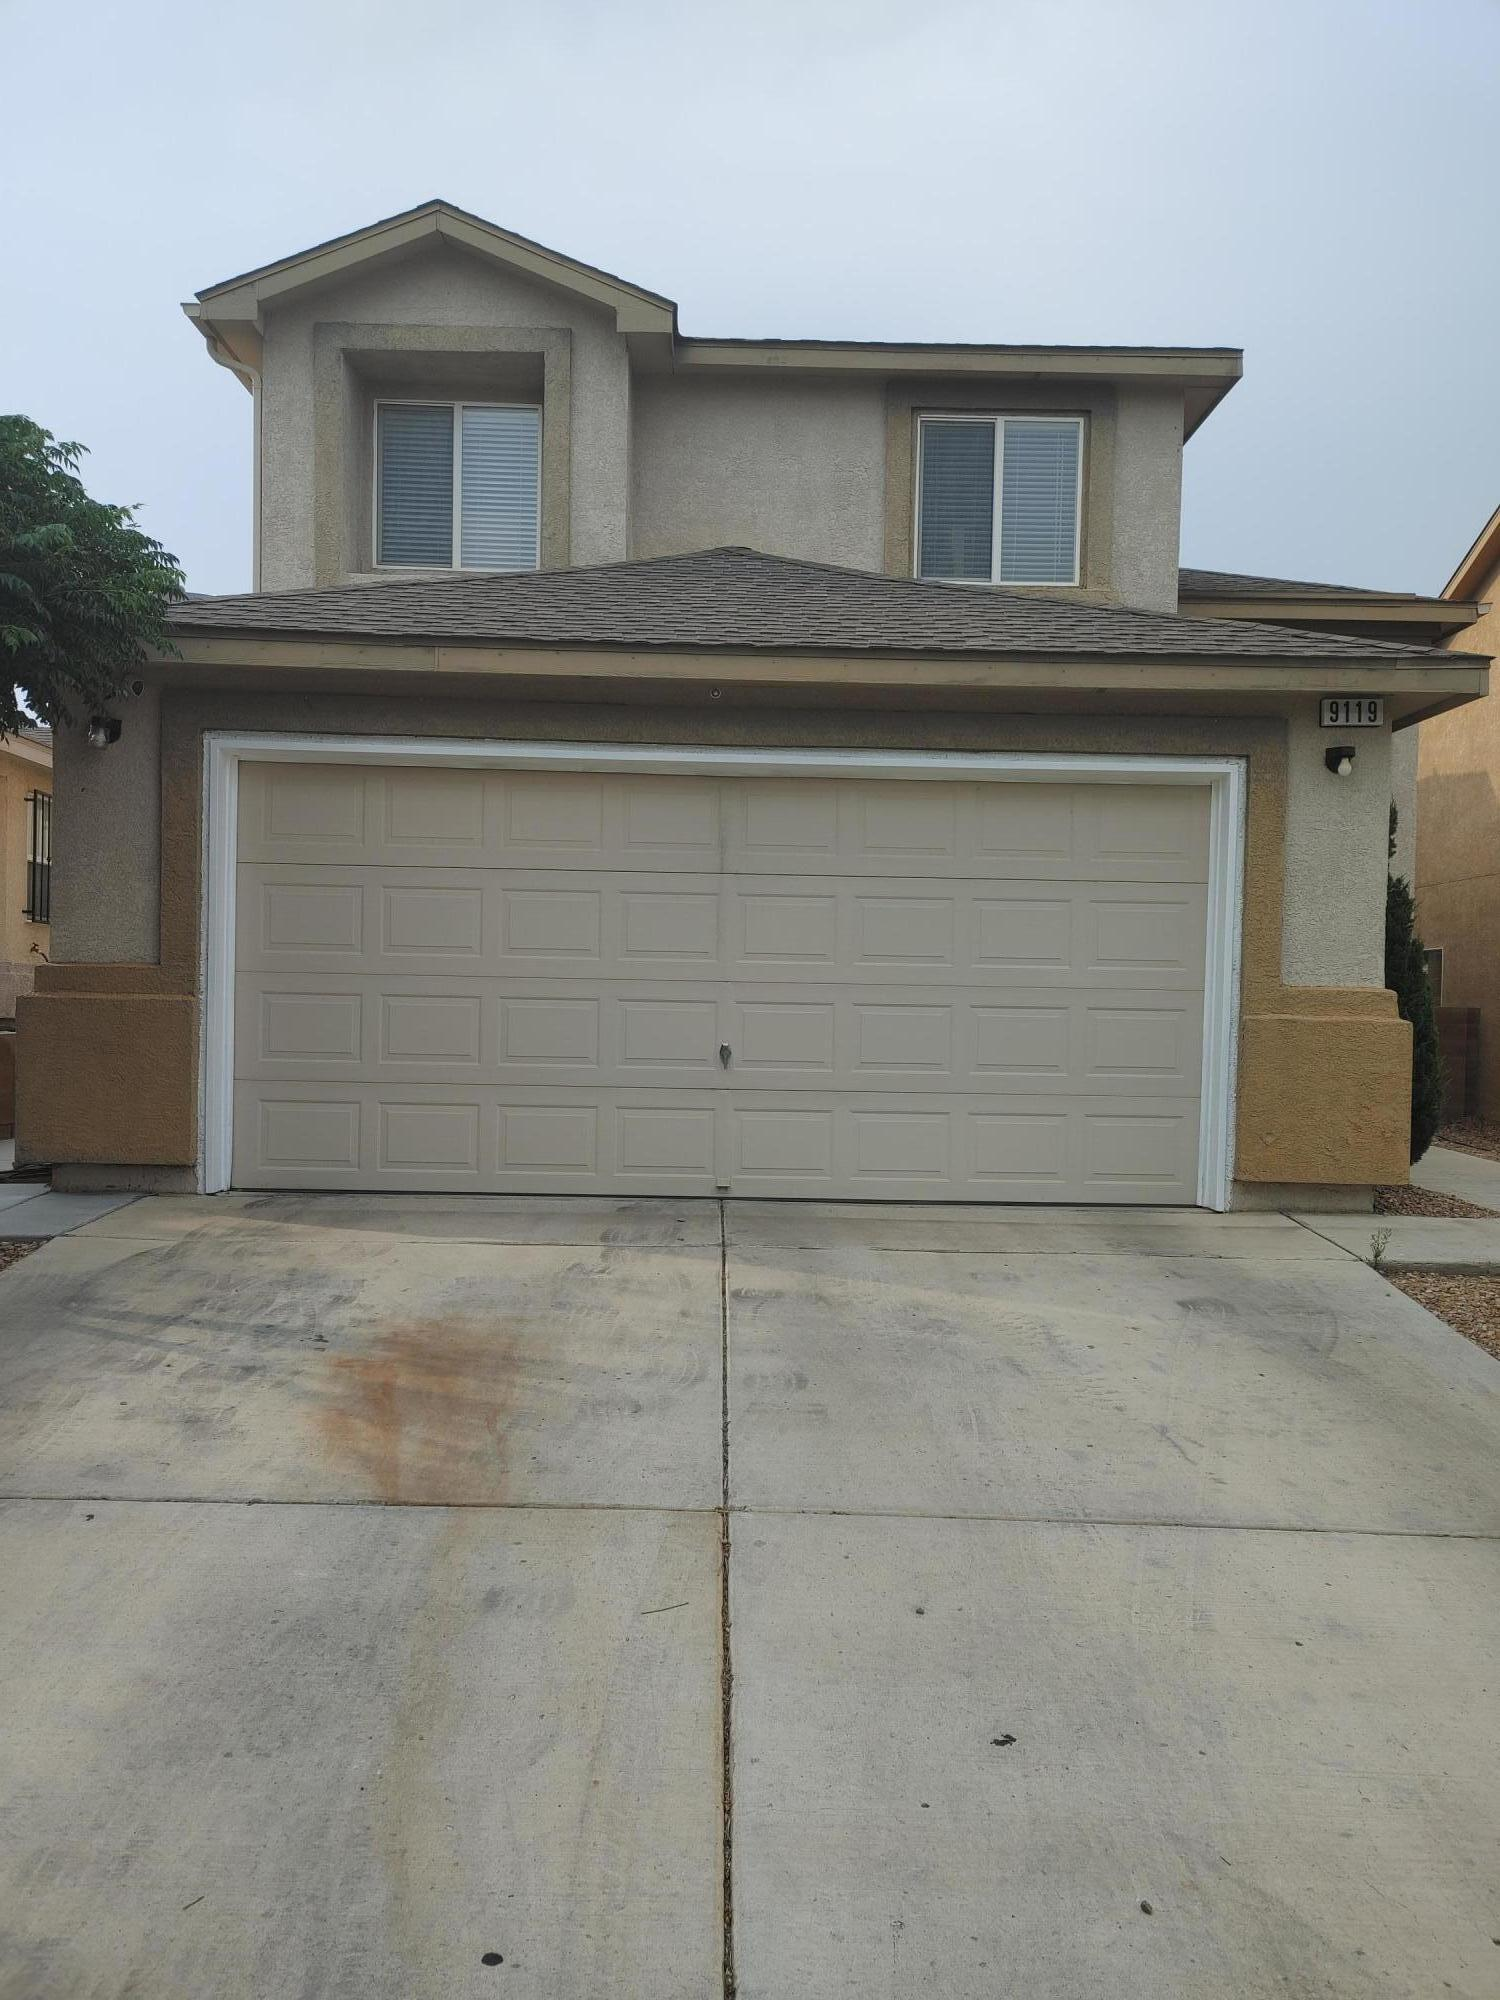 Pride of ownership beautiful 2 stories  home ,Open floor plan  living room cozy family room with fireplace 3 - 4 bedrooms 2.5  (4th bedroom can be easily converted ) ,2 A/C units.Over $40,000 in upgrades newer paint, laminated flooring  remodeled kitchen cabinets and countertops.Cozy gazebo and beautiful fountain for family gathering.